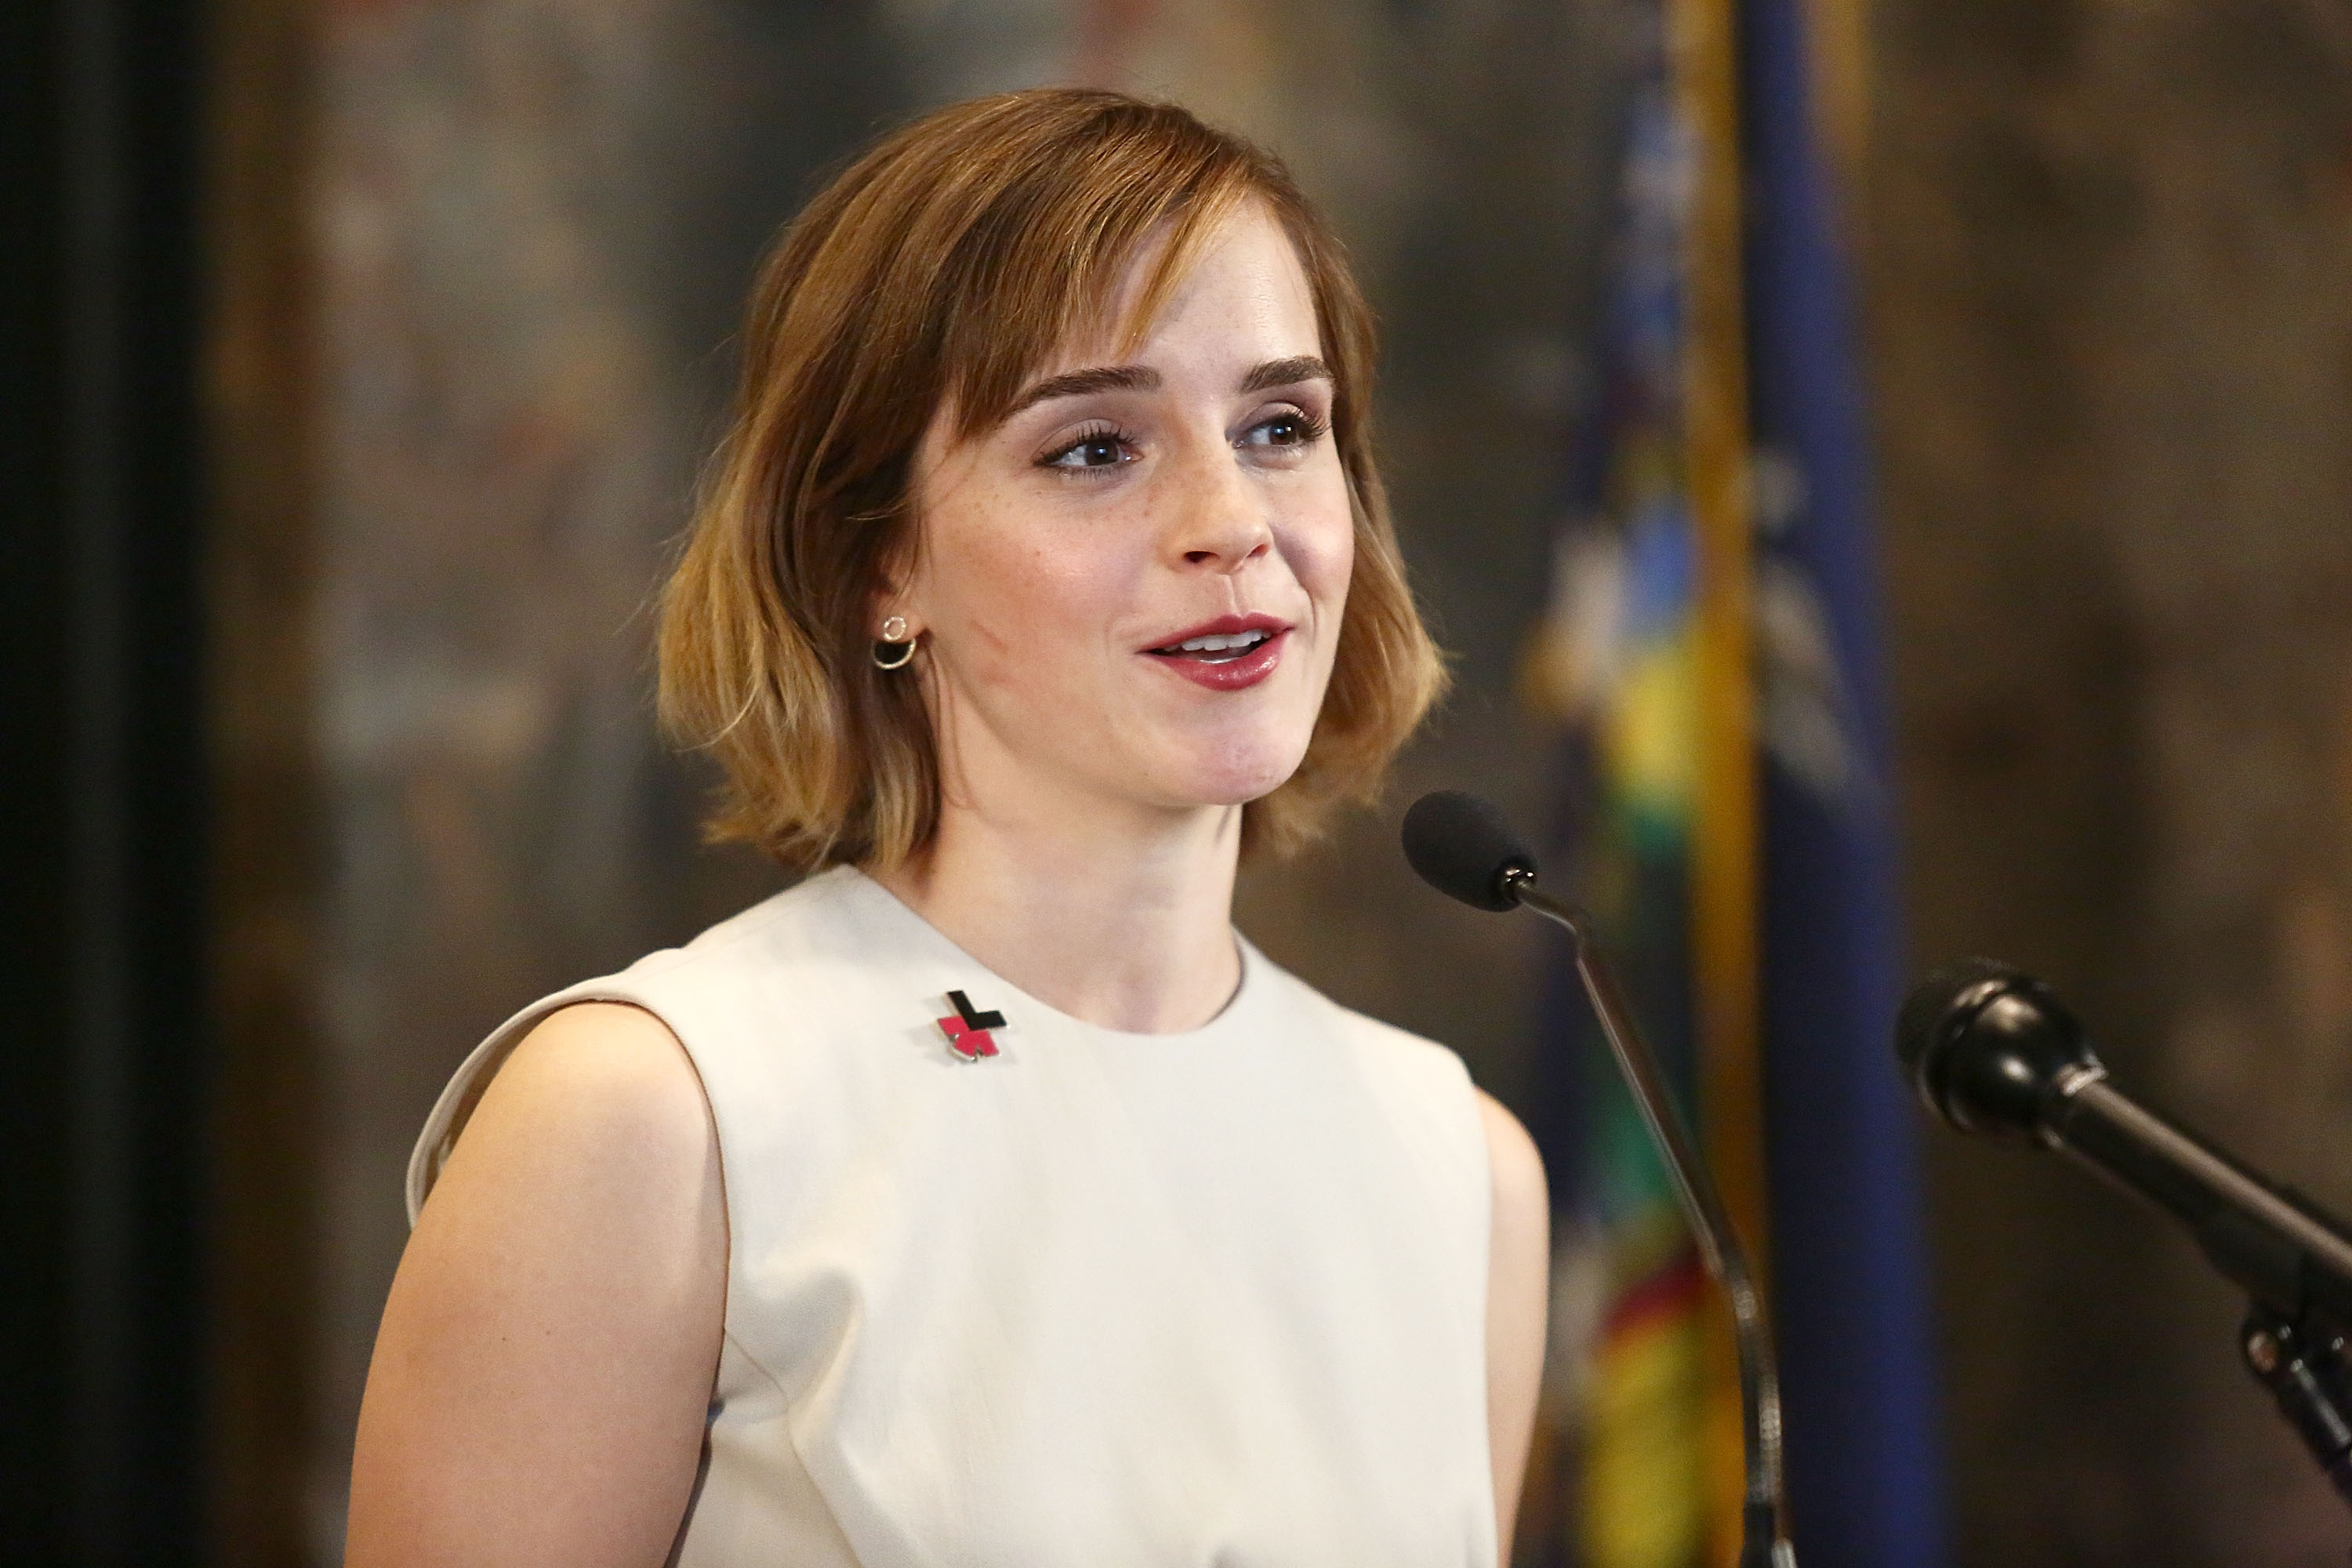 Actress Emma Watson speaks during The Empire State Building lighting In HeForShe Magenta For International Women's Day at The Empire State Building on March 8, 2016 in New York City.